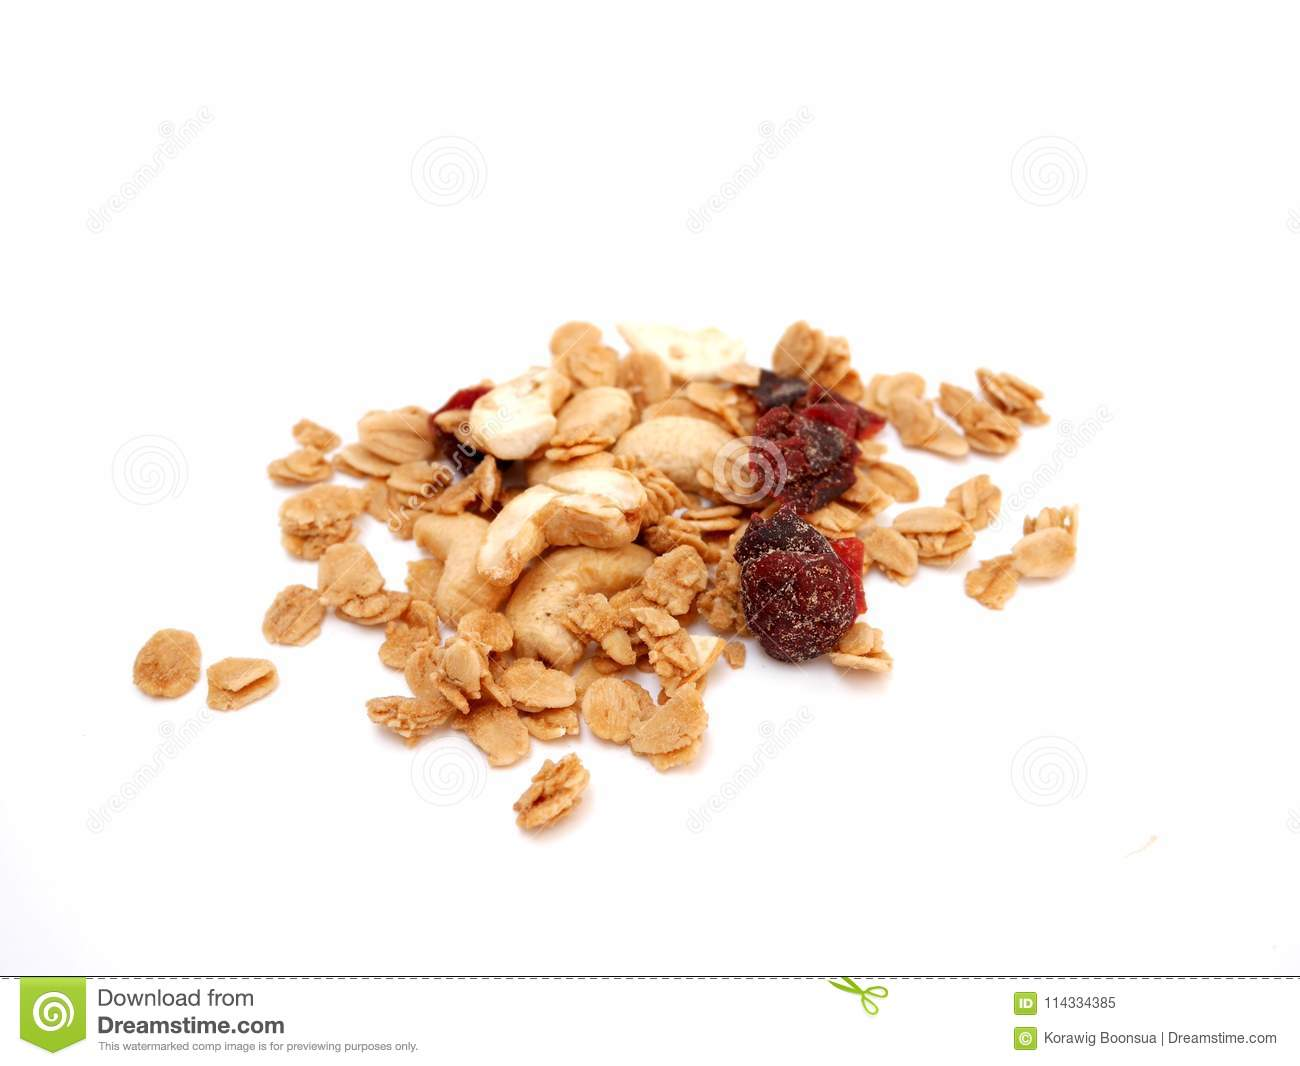 Pile of granola cereal on isolated